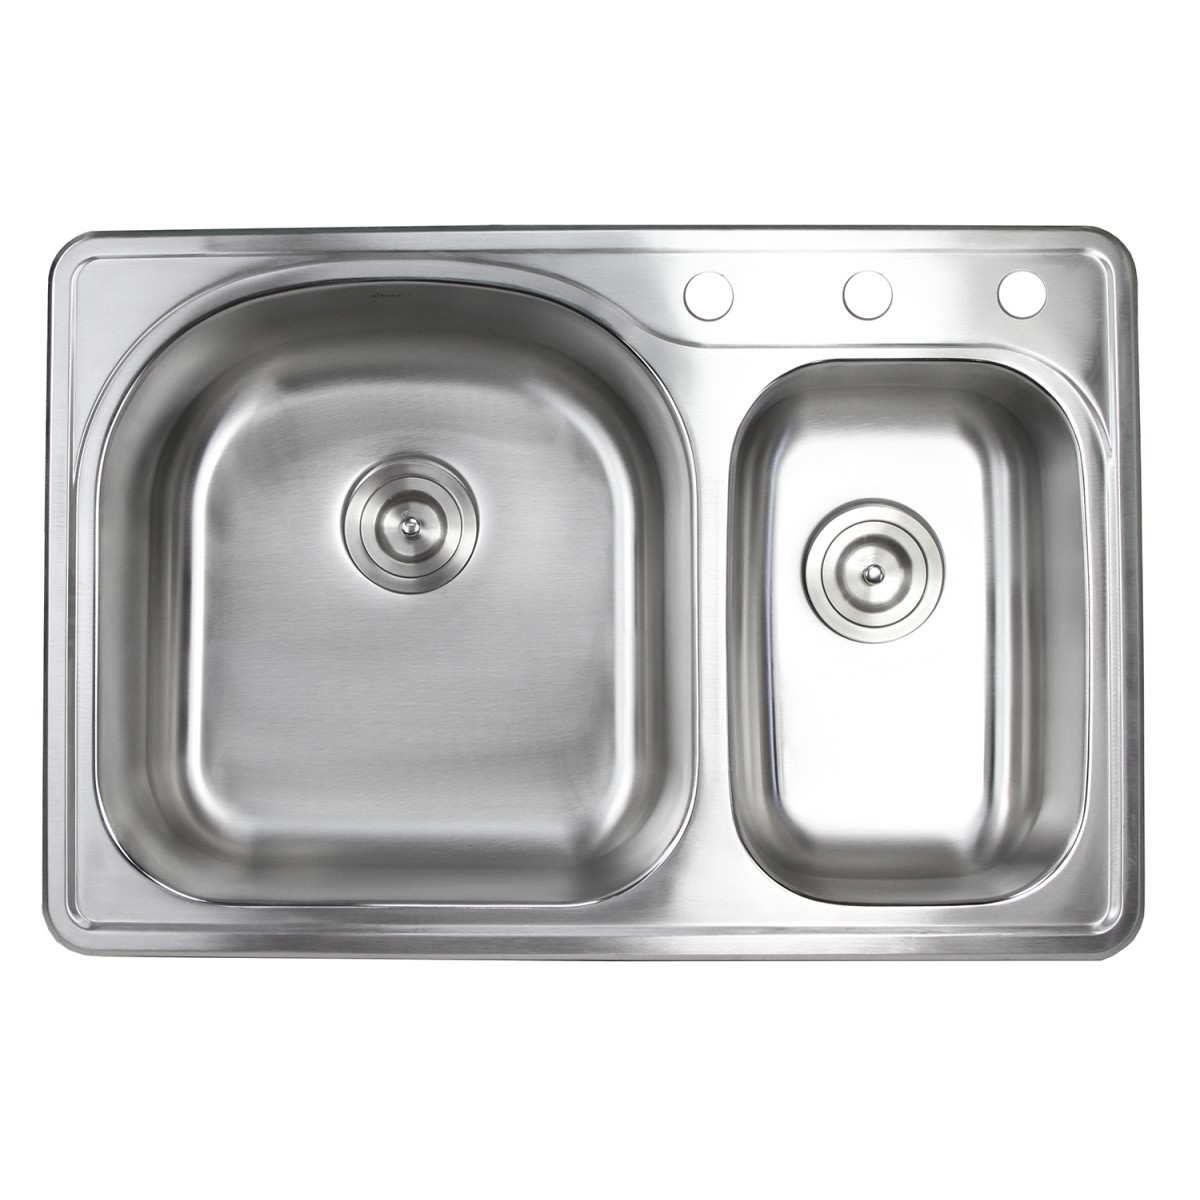 33 Inch Top-mount / Drop-in Stainless Steel 70/30 Double Bowl Kitchen Sink  With 3 Faucet Holes - 18 Gauge with Accessories